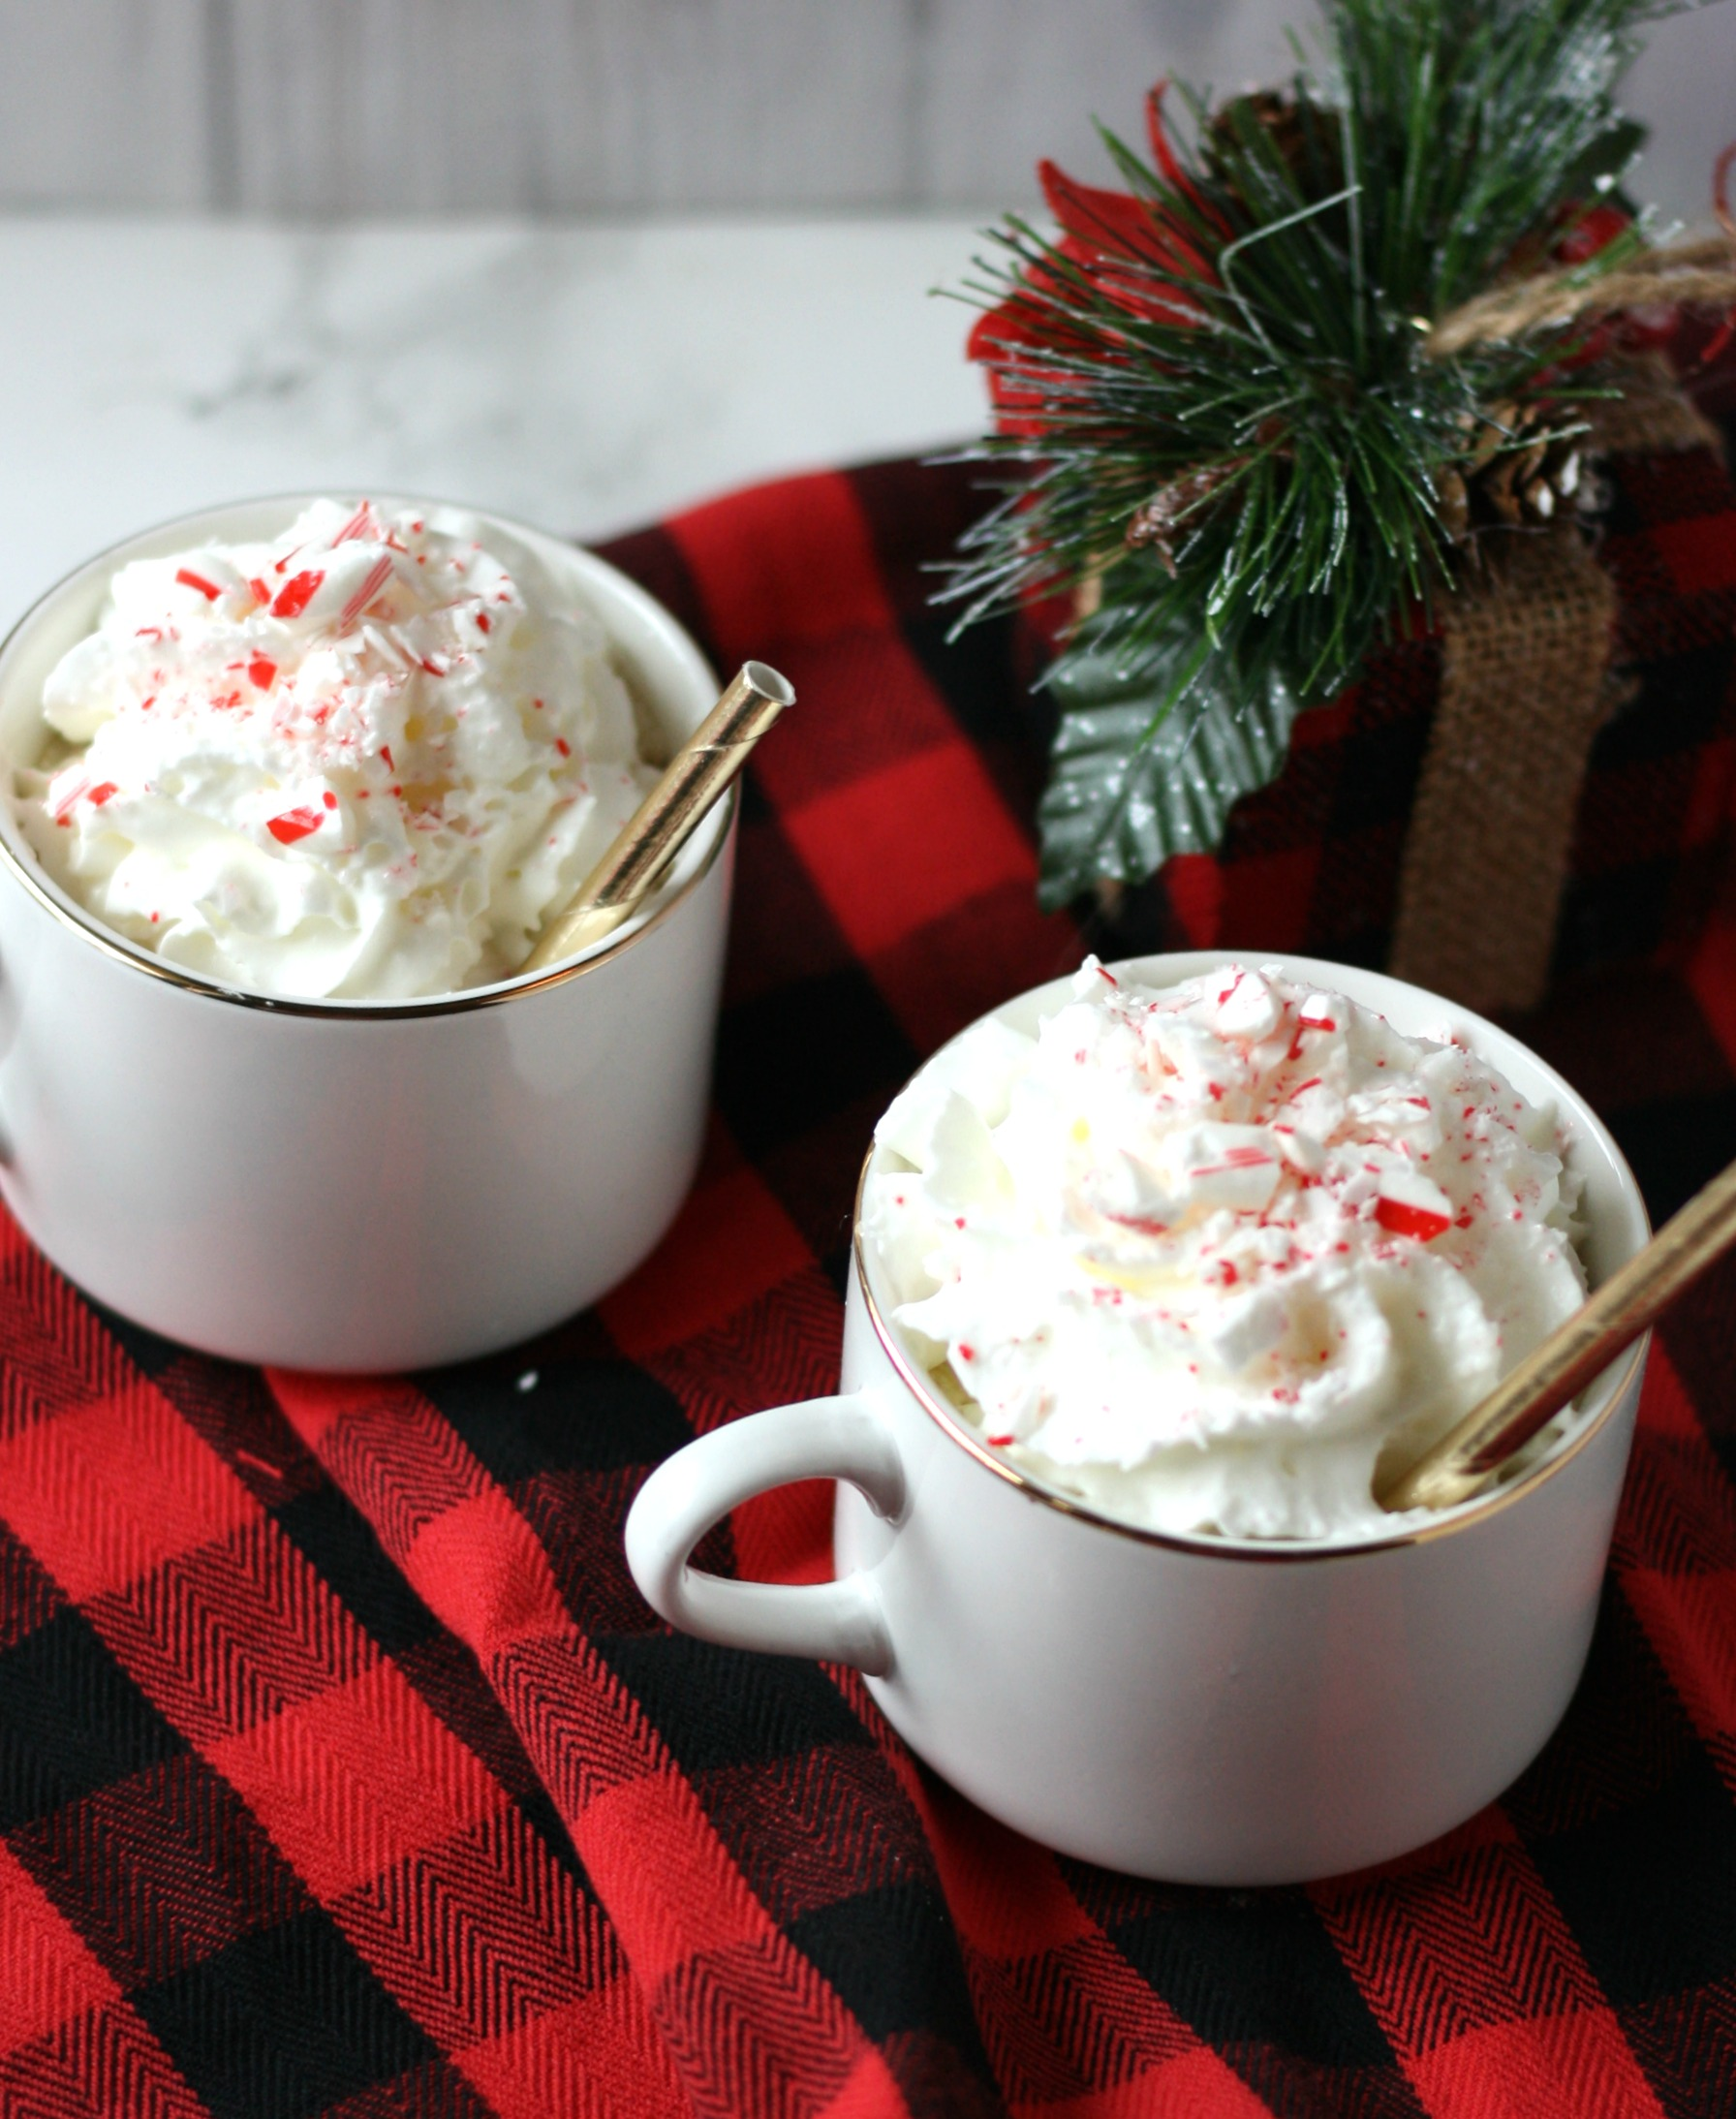 peppermint mocha on buffalo plaid blanket